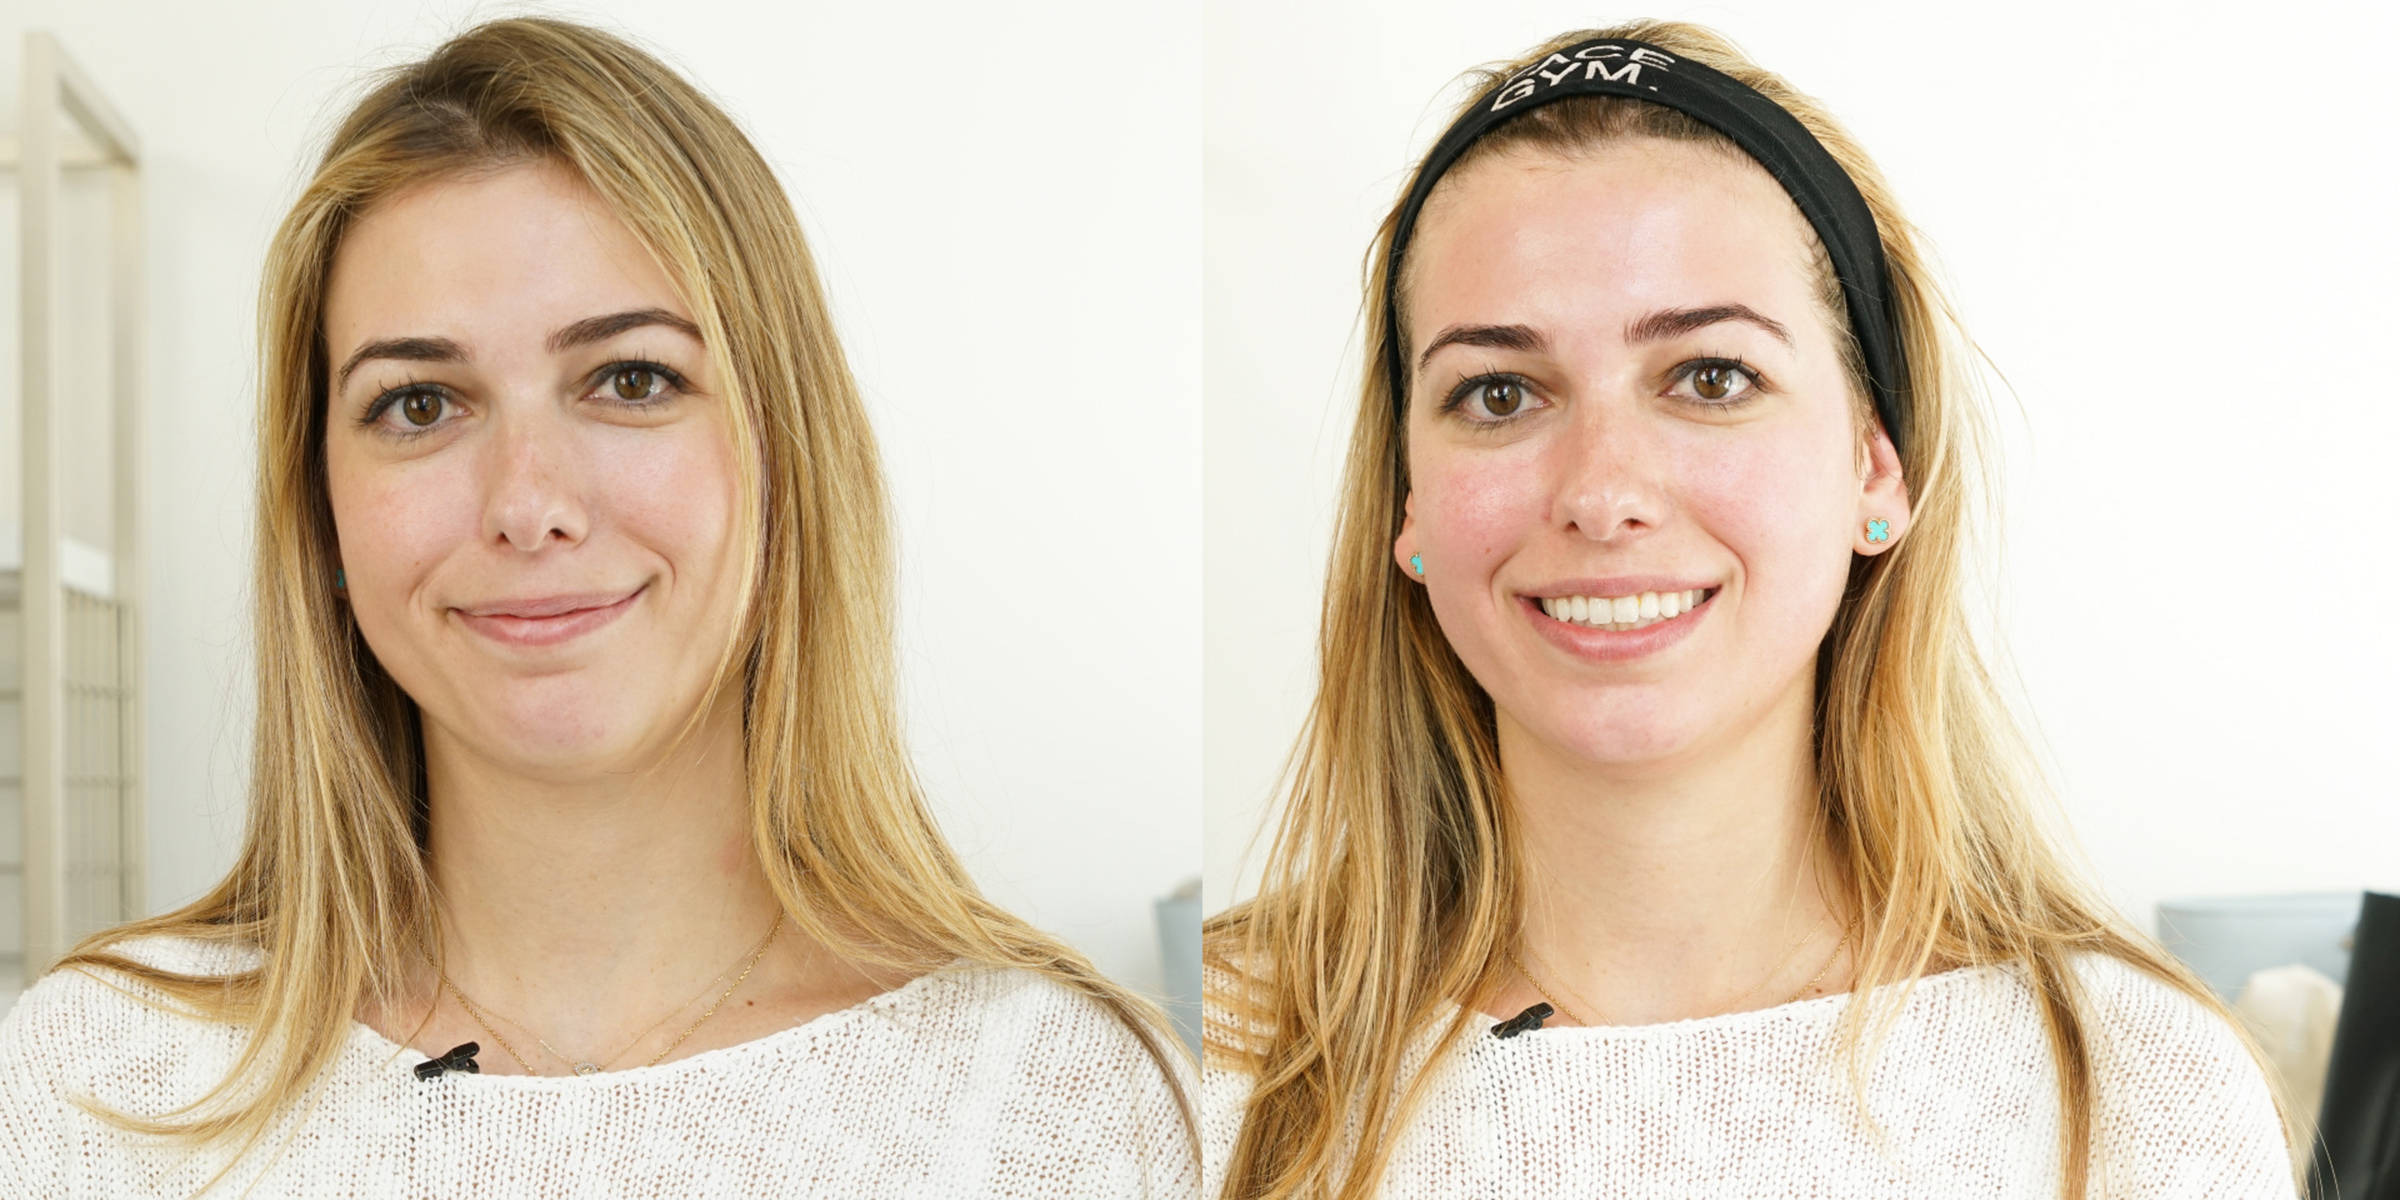 Facial exercise: Does it work, and how can it yield desirable results?